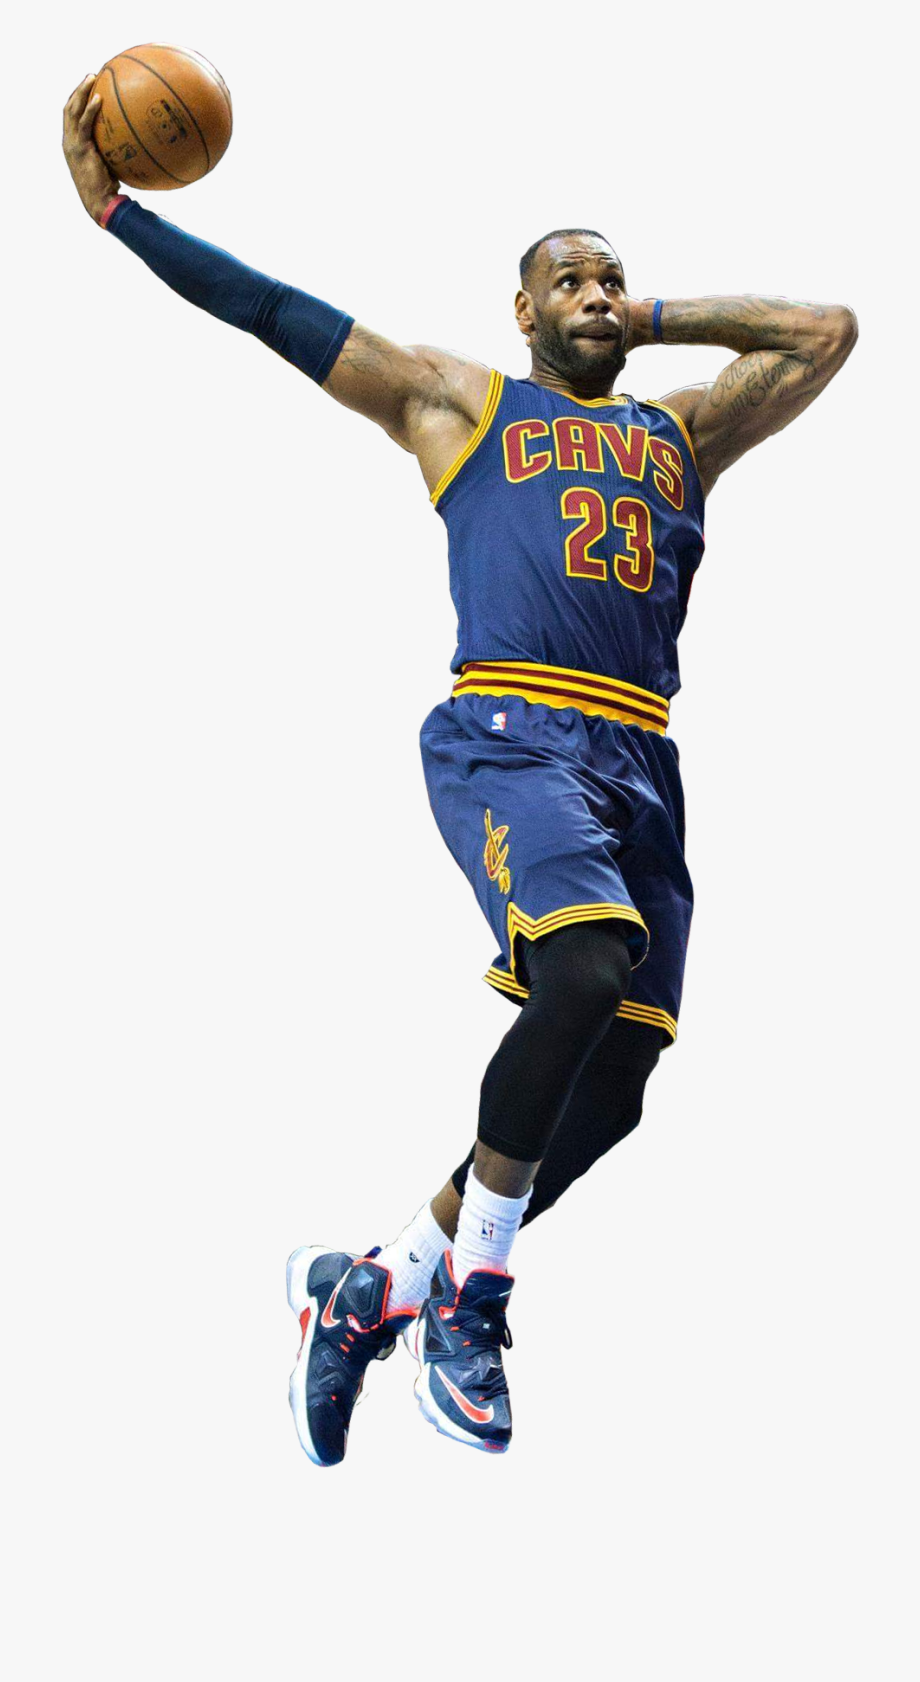 Basketball Player Dunking Png.